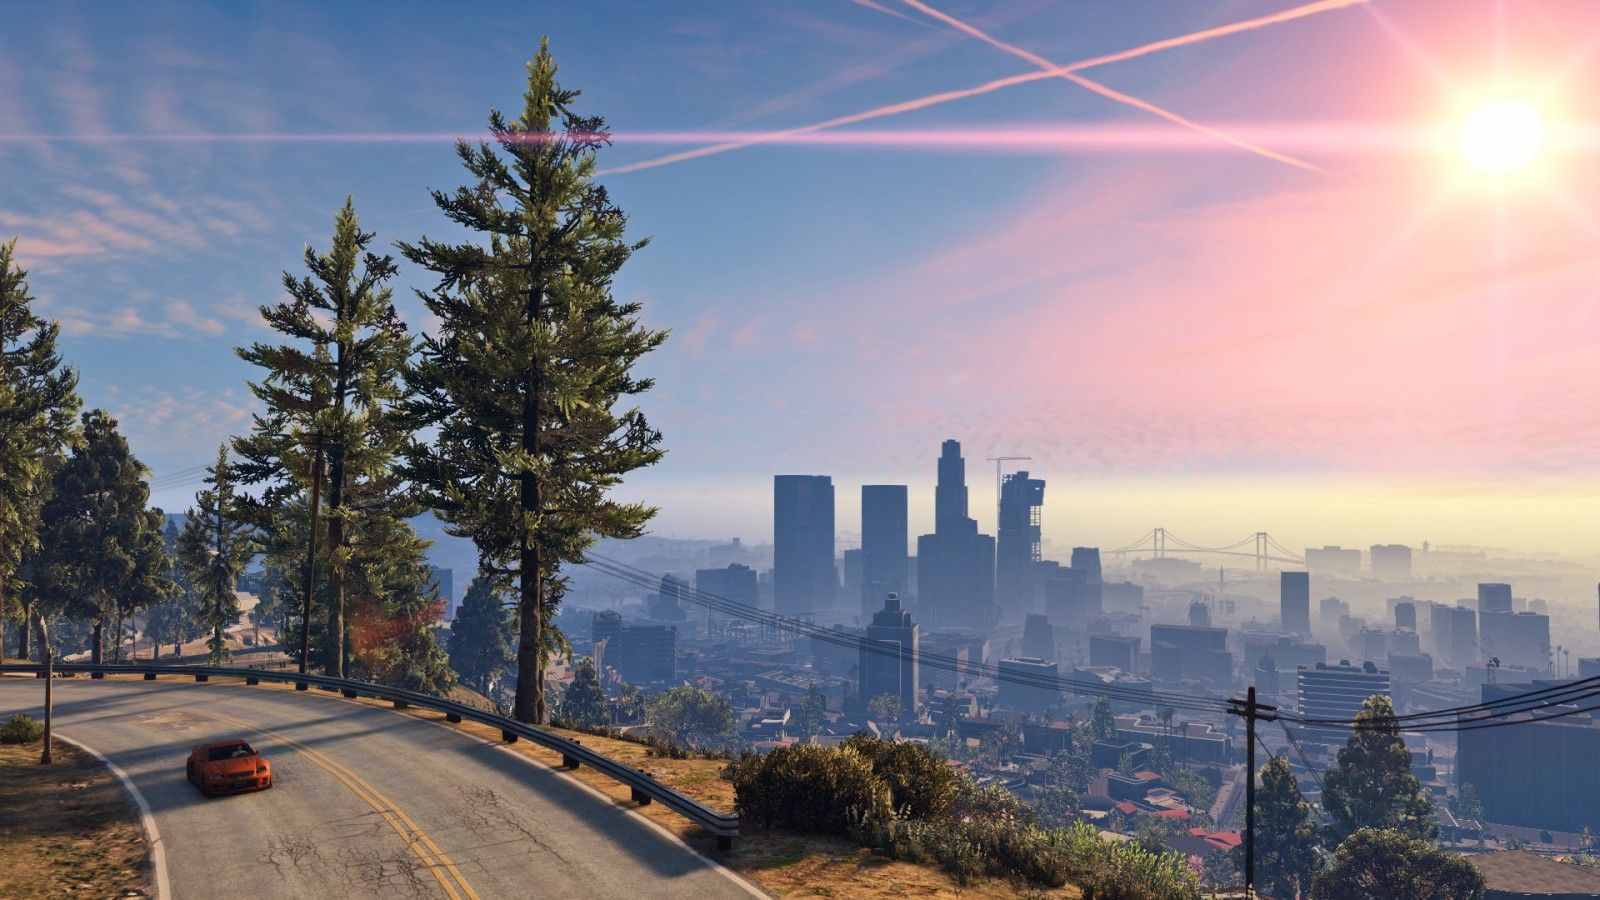 Gta 5 Wallpaper Photo Is 4k Wallpaper In 2019 Grand Theft